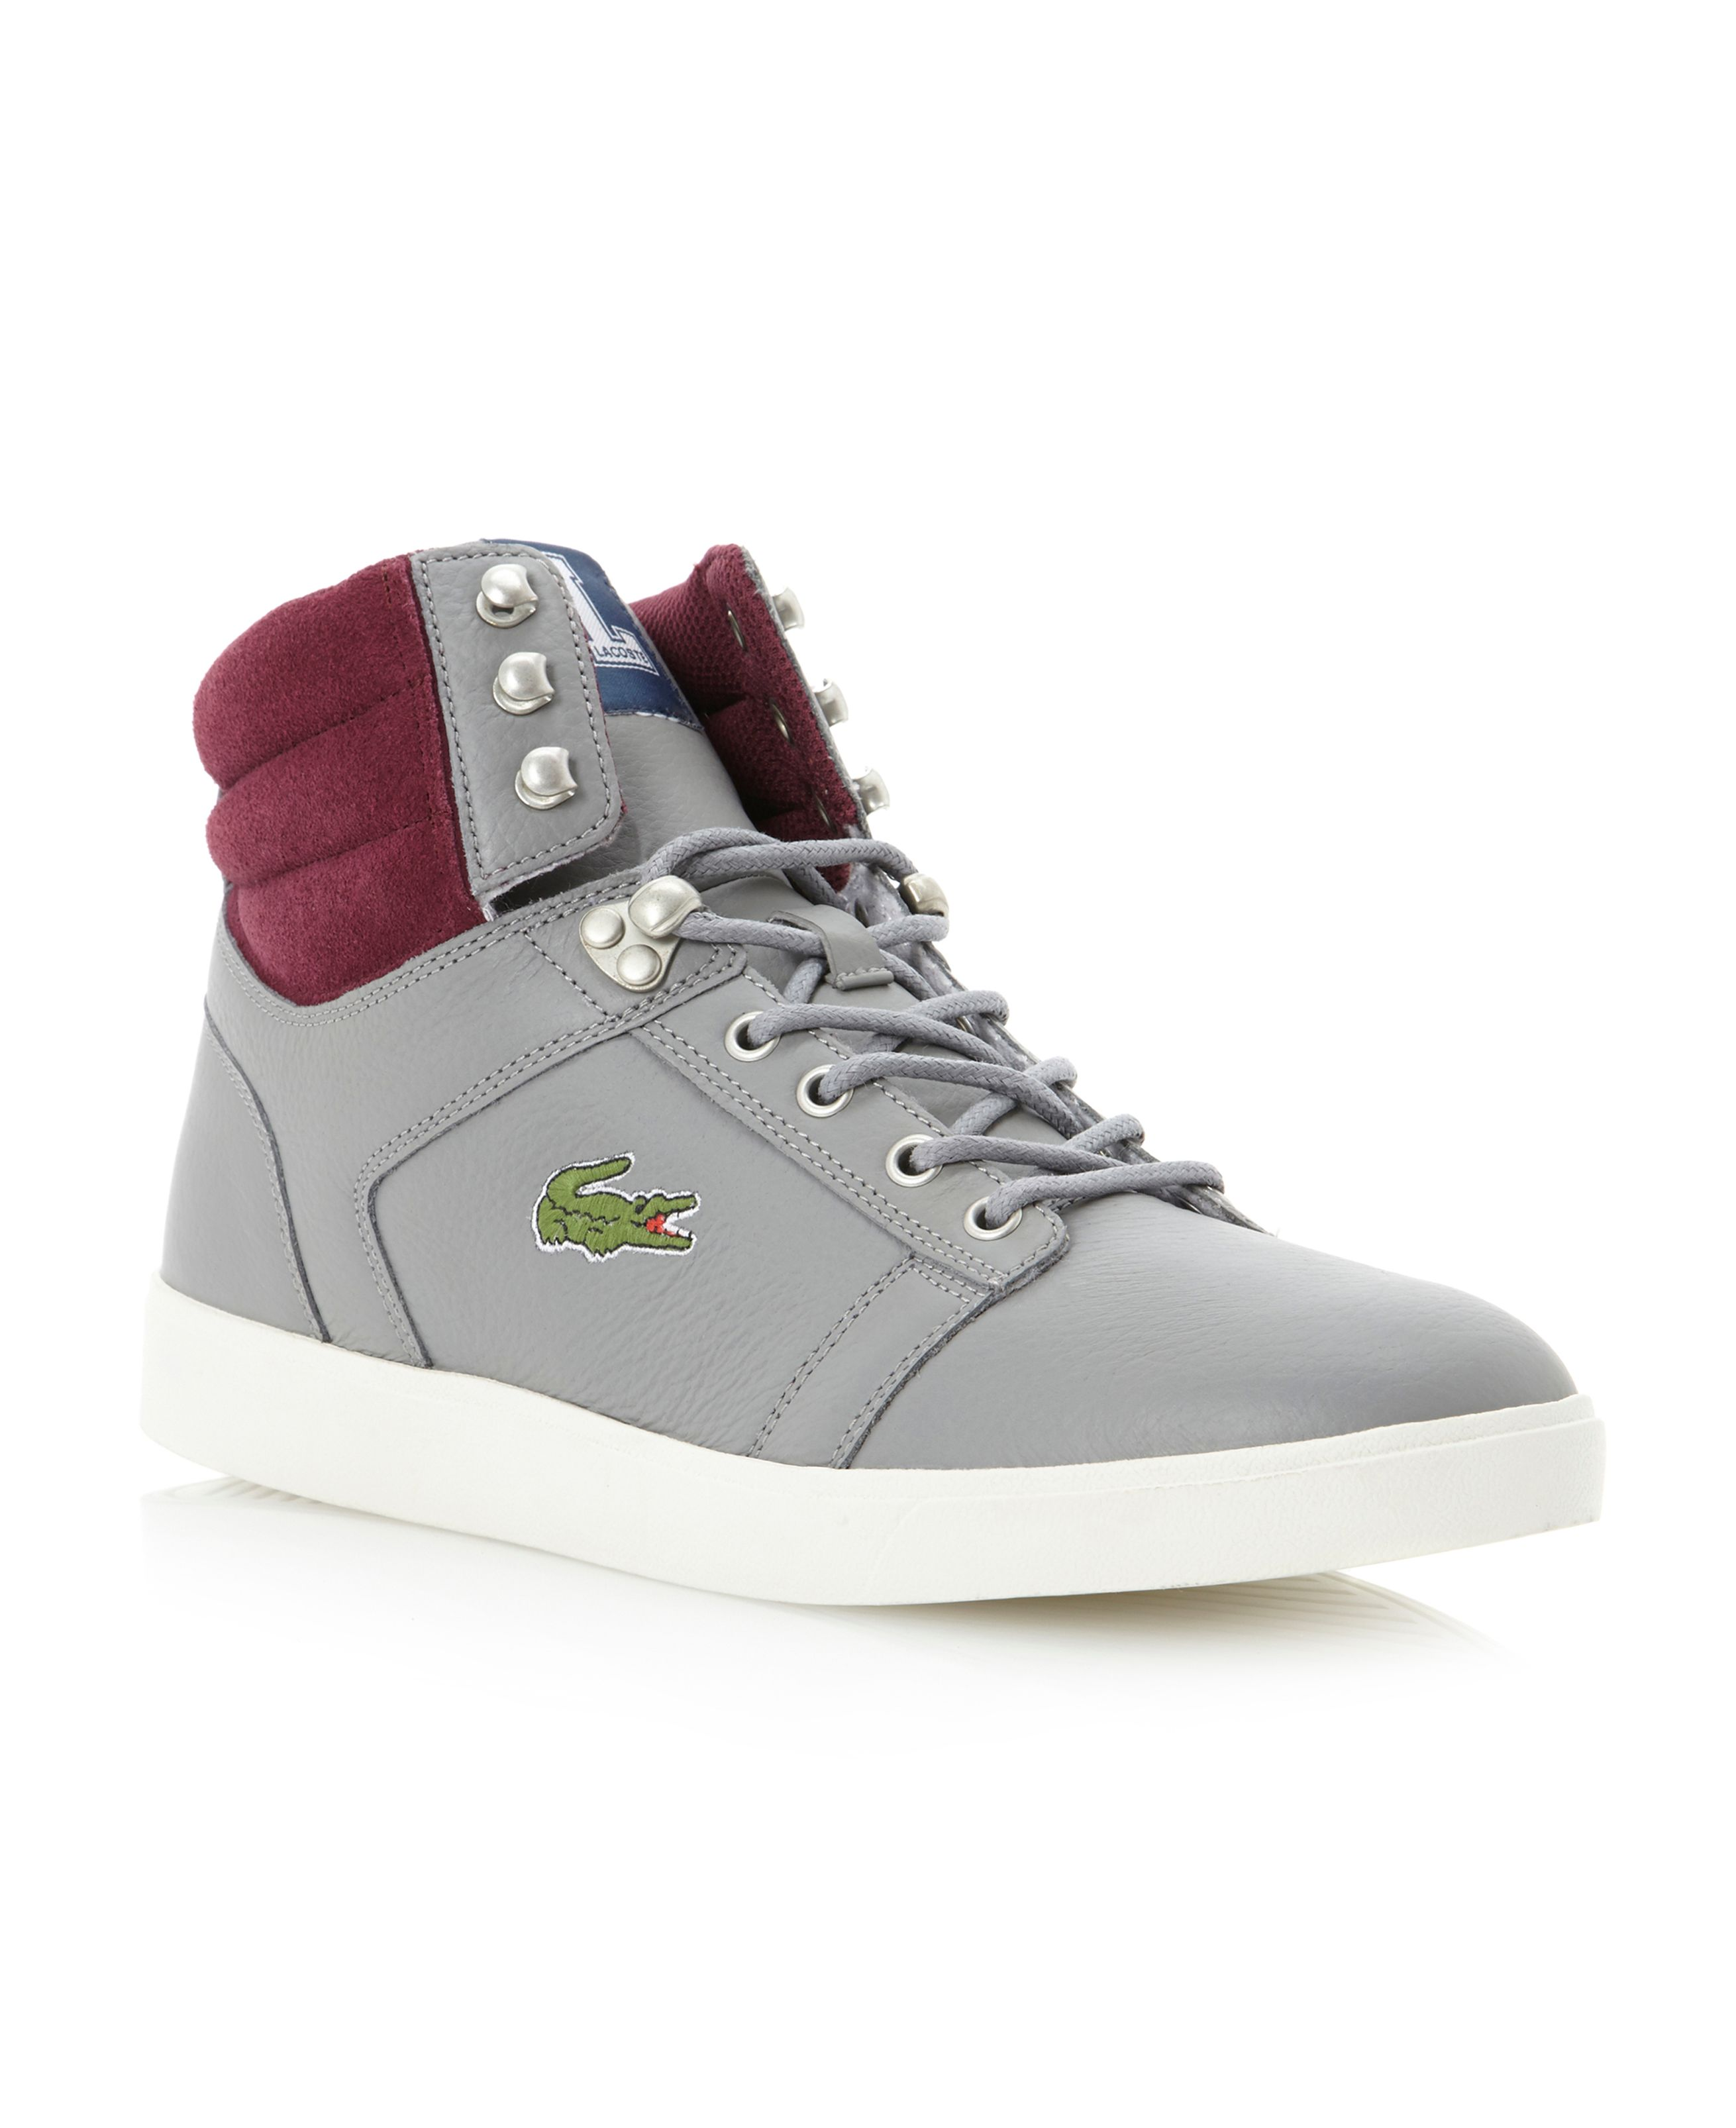 Orelle Mcs padded collar hi top